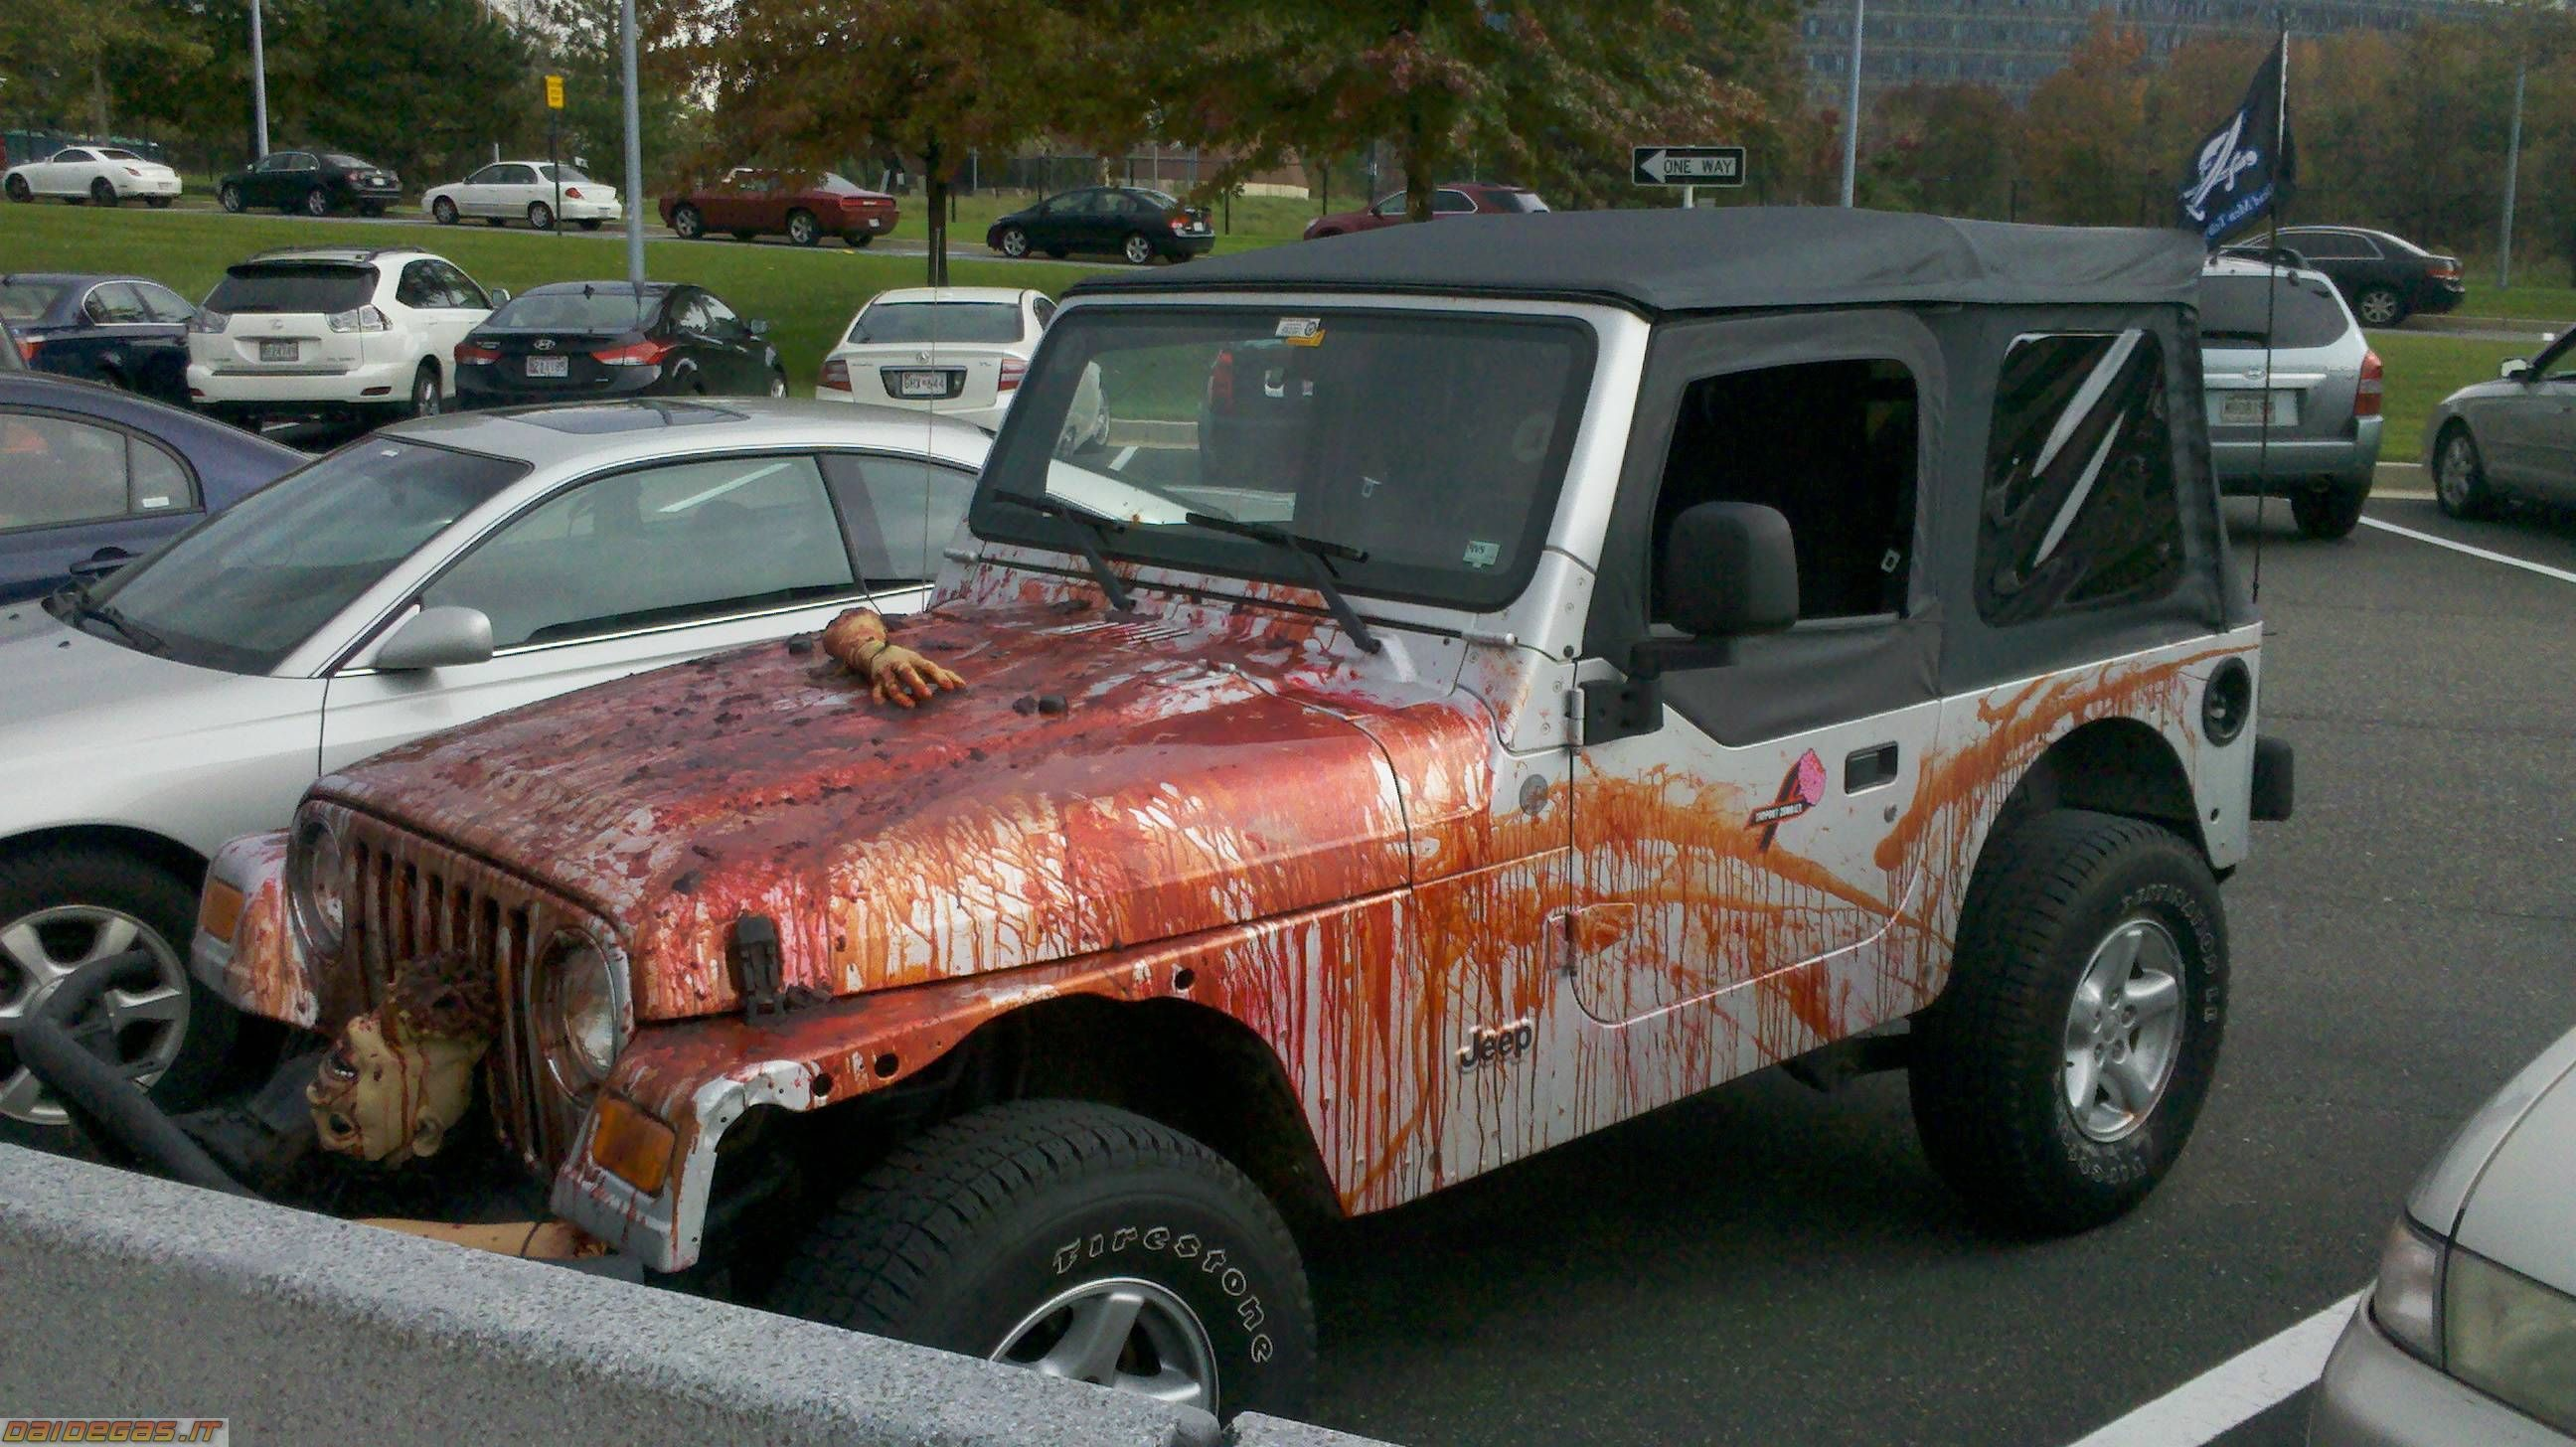 Halloween Vehicle Of The Year Jeeps Jeep Cars Wrangler Expo Could You Imagine Seeing This Horror Show Going Down Road Lol